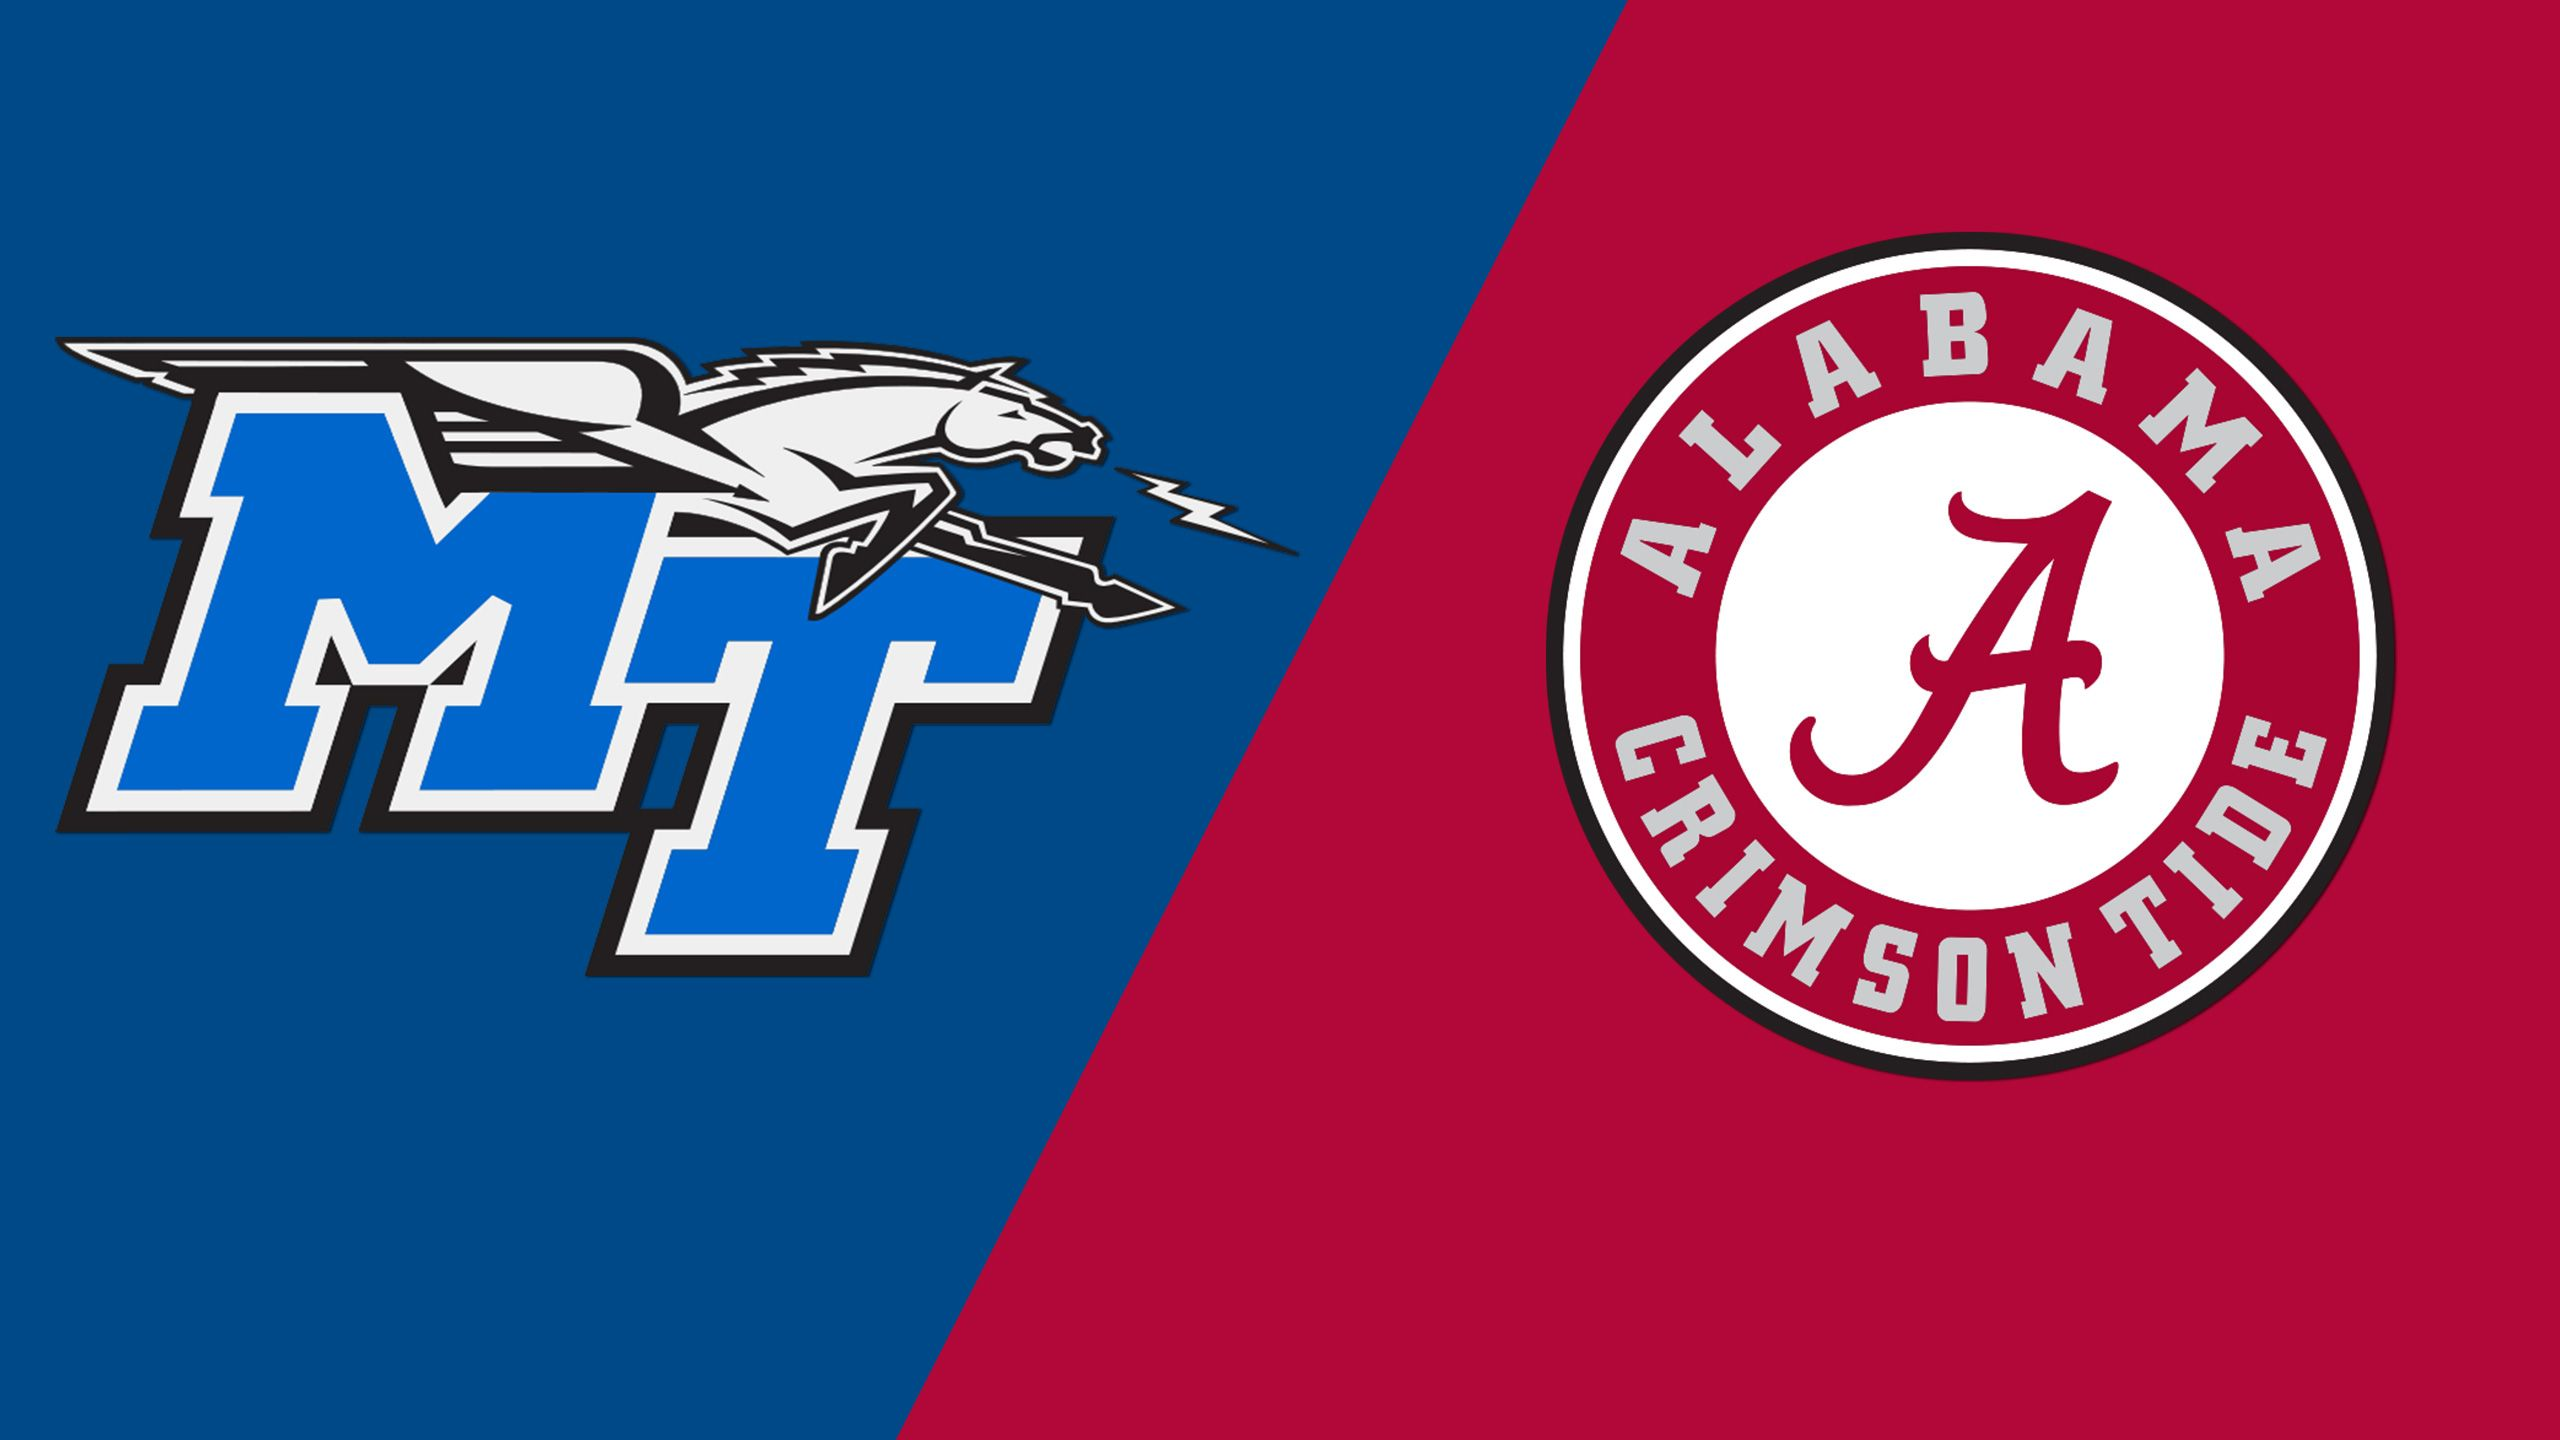 Middle Tennessee vs. #12 Alabama (Site 12 / Game 2) (NCAA Softball Championship)